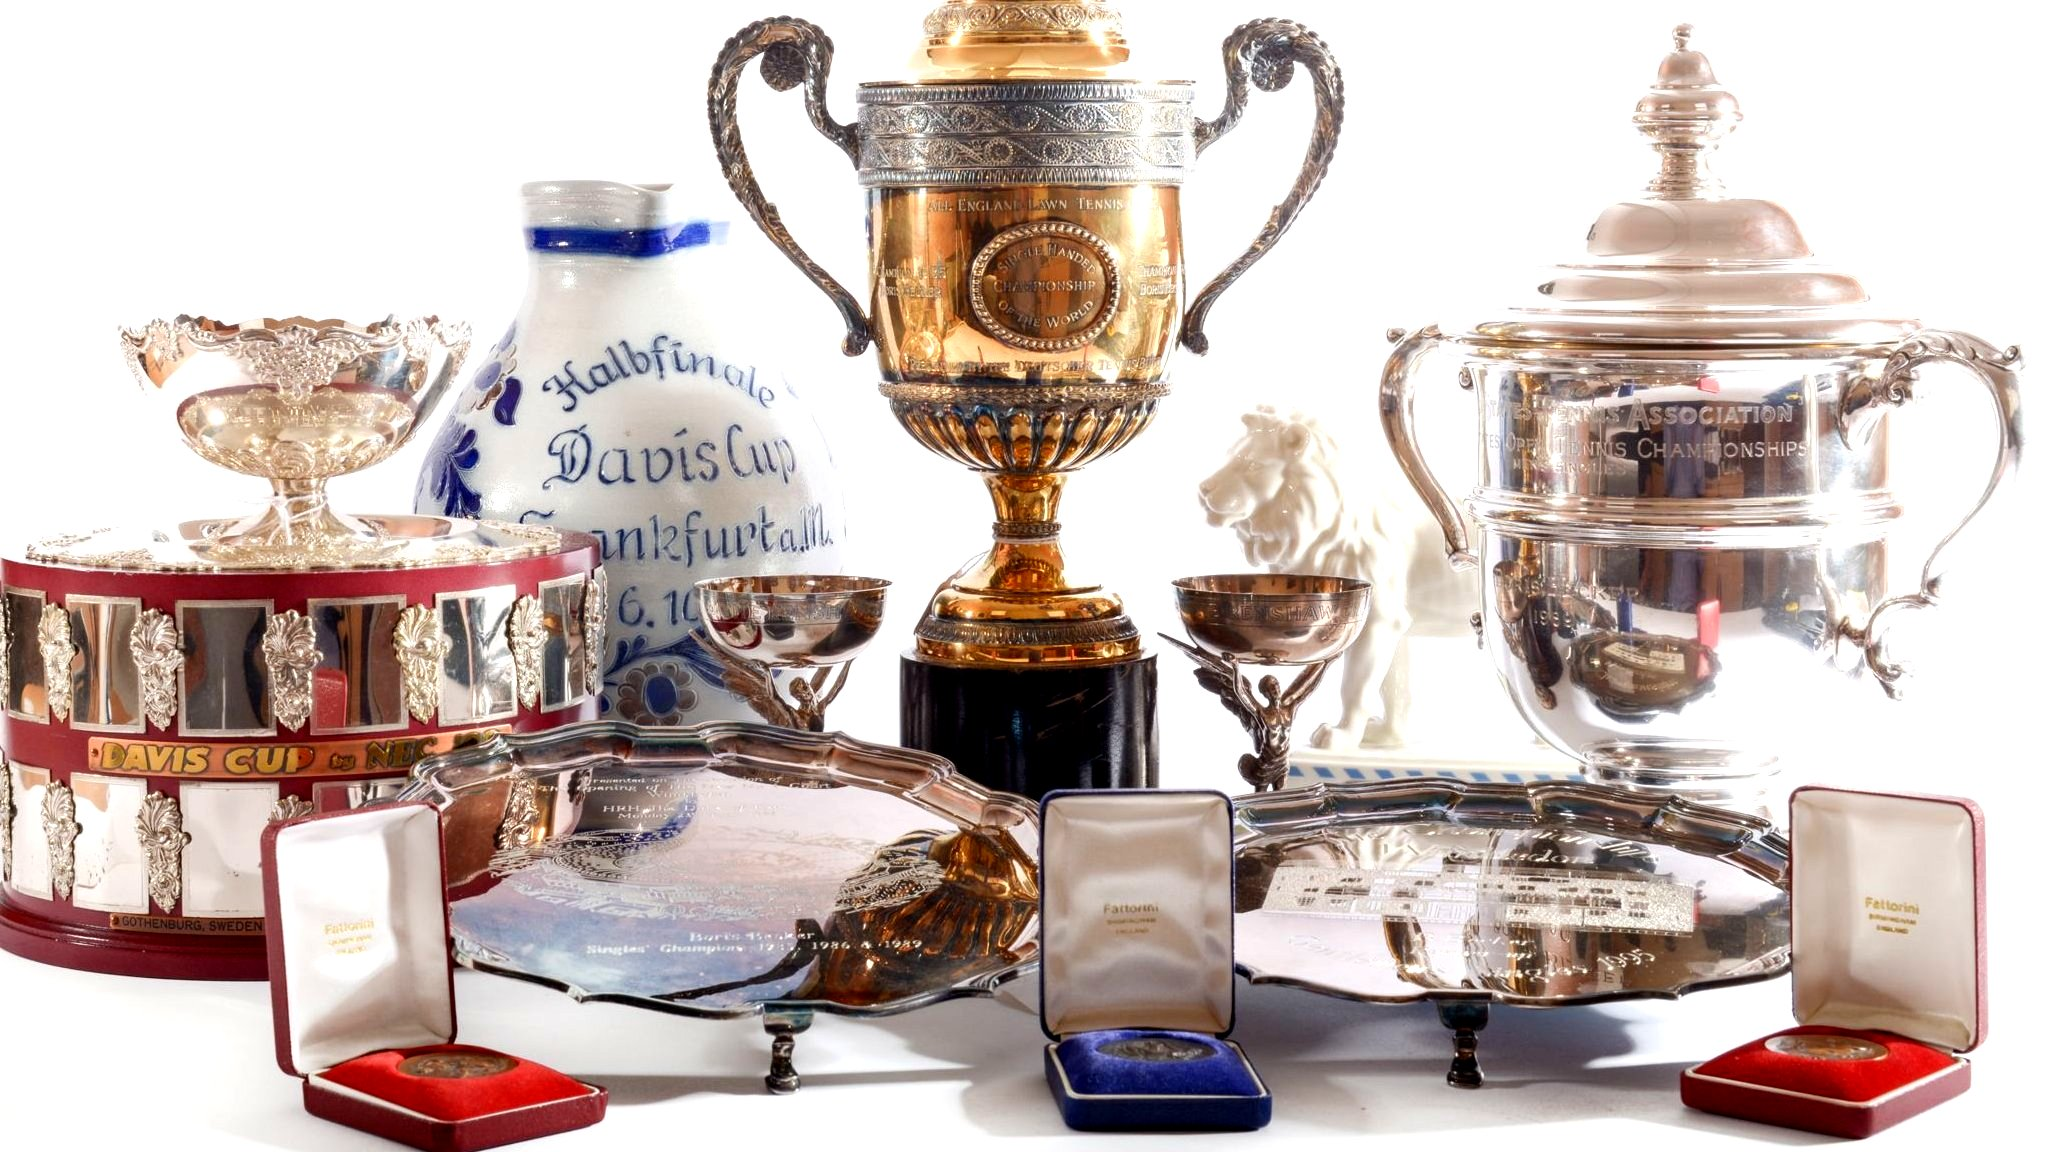 Becker trophies - and his socks - up for £200,000 at auction